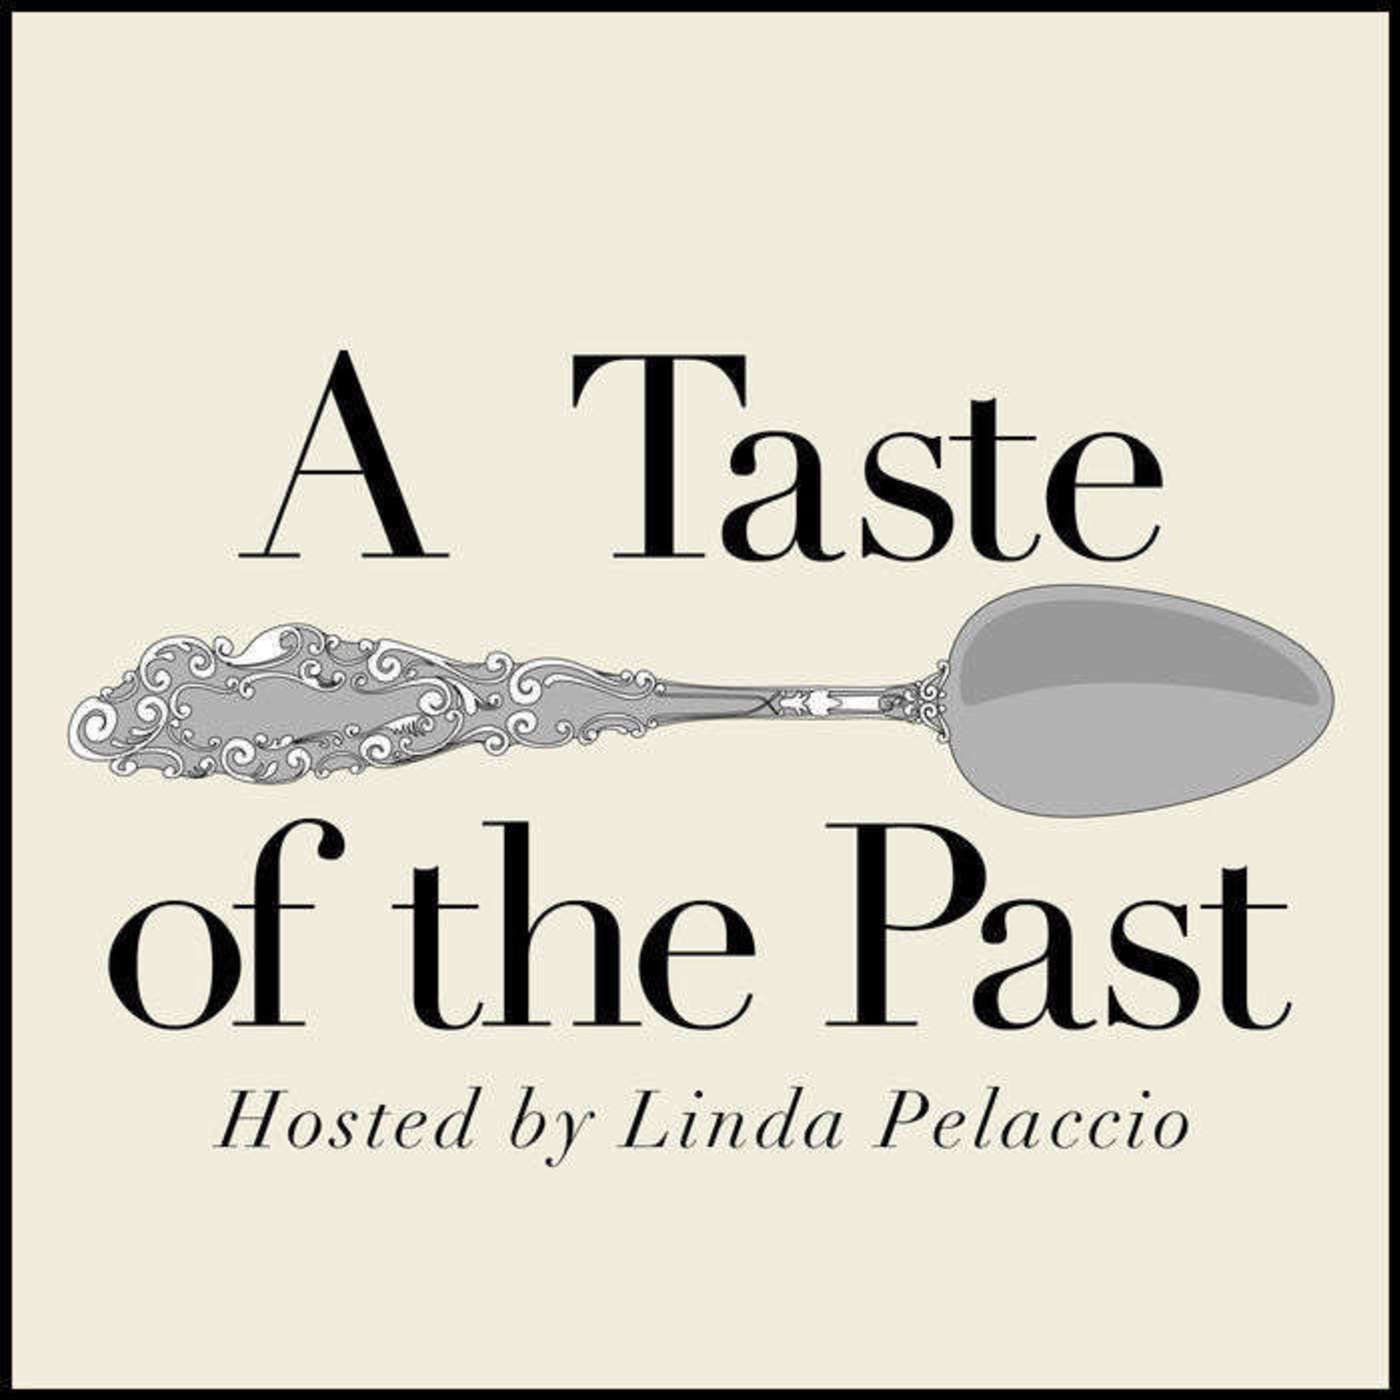 Episode 197: History of Food in India